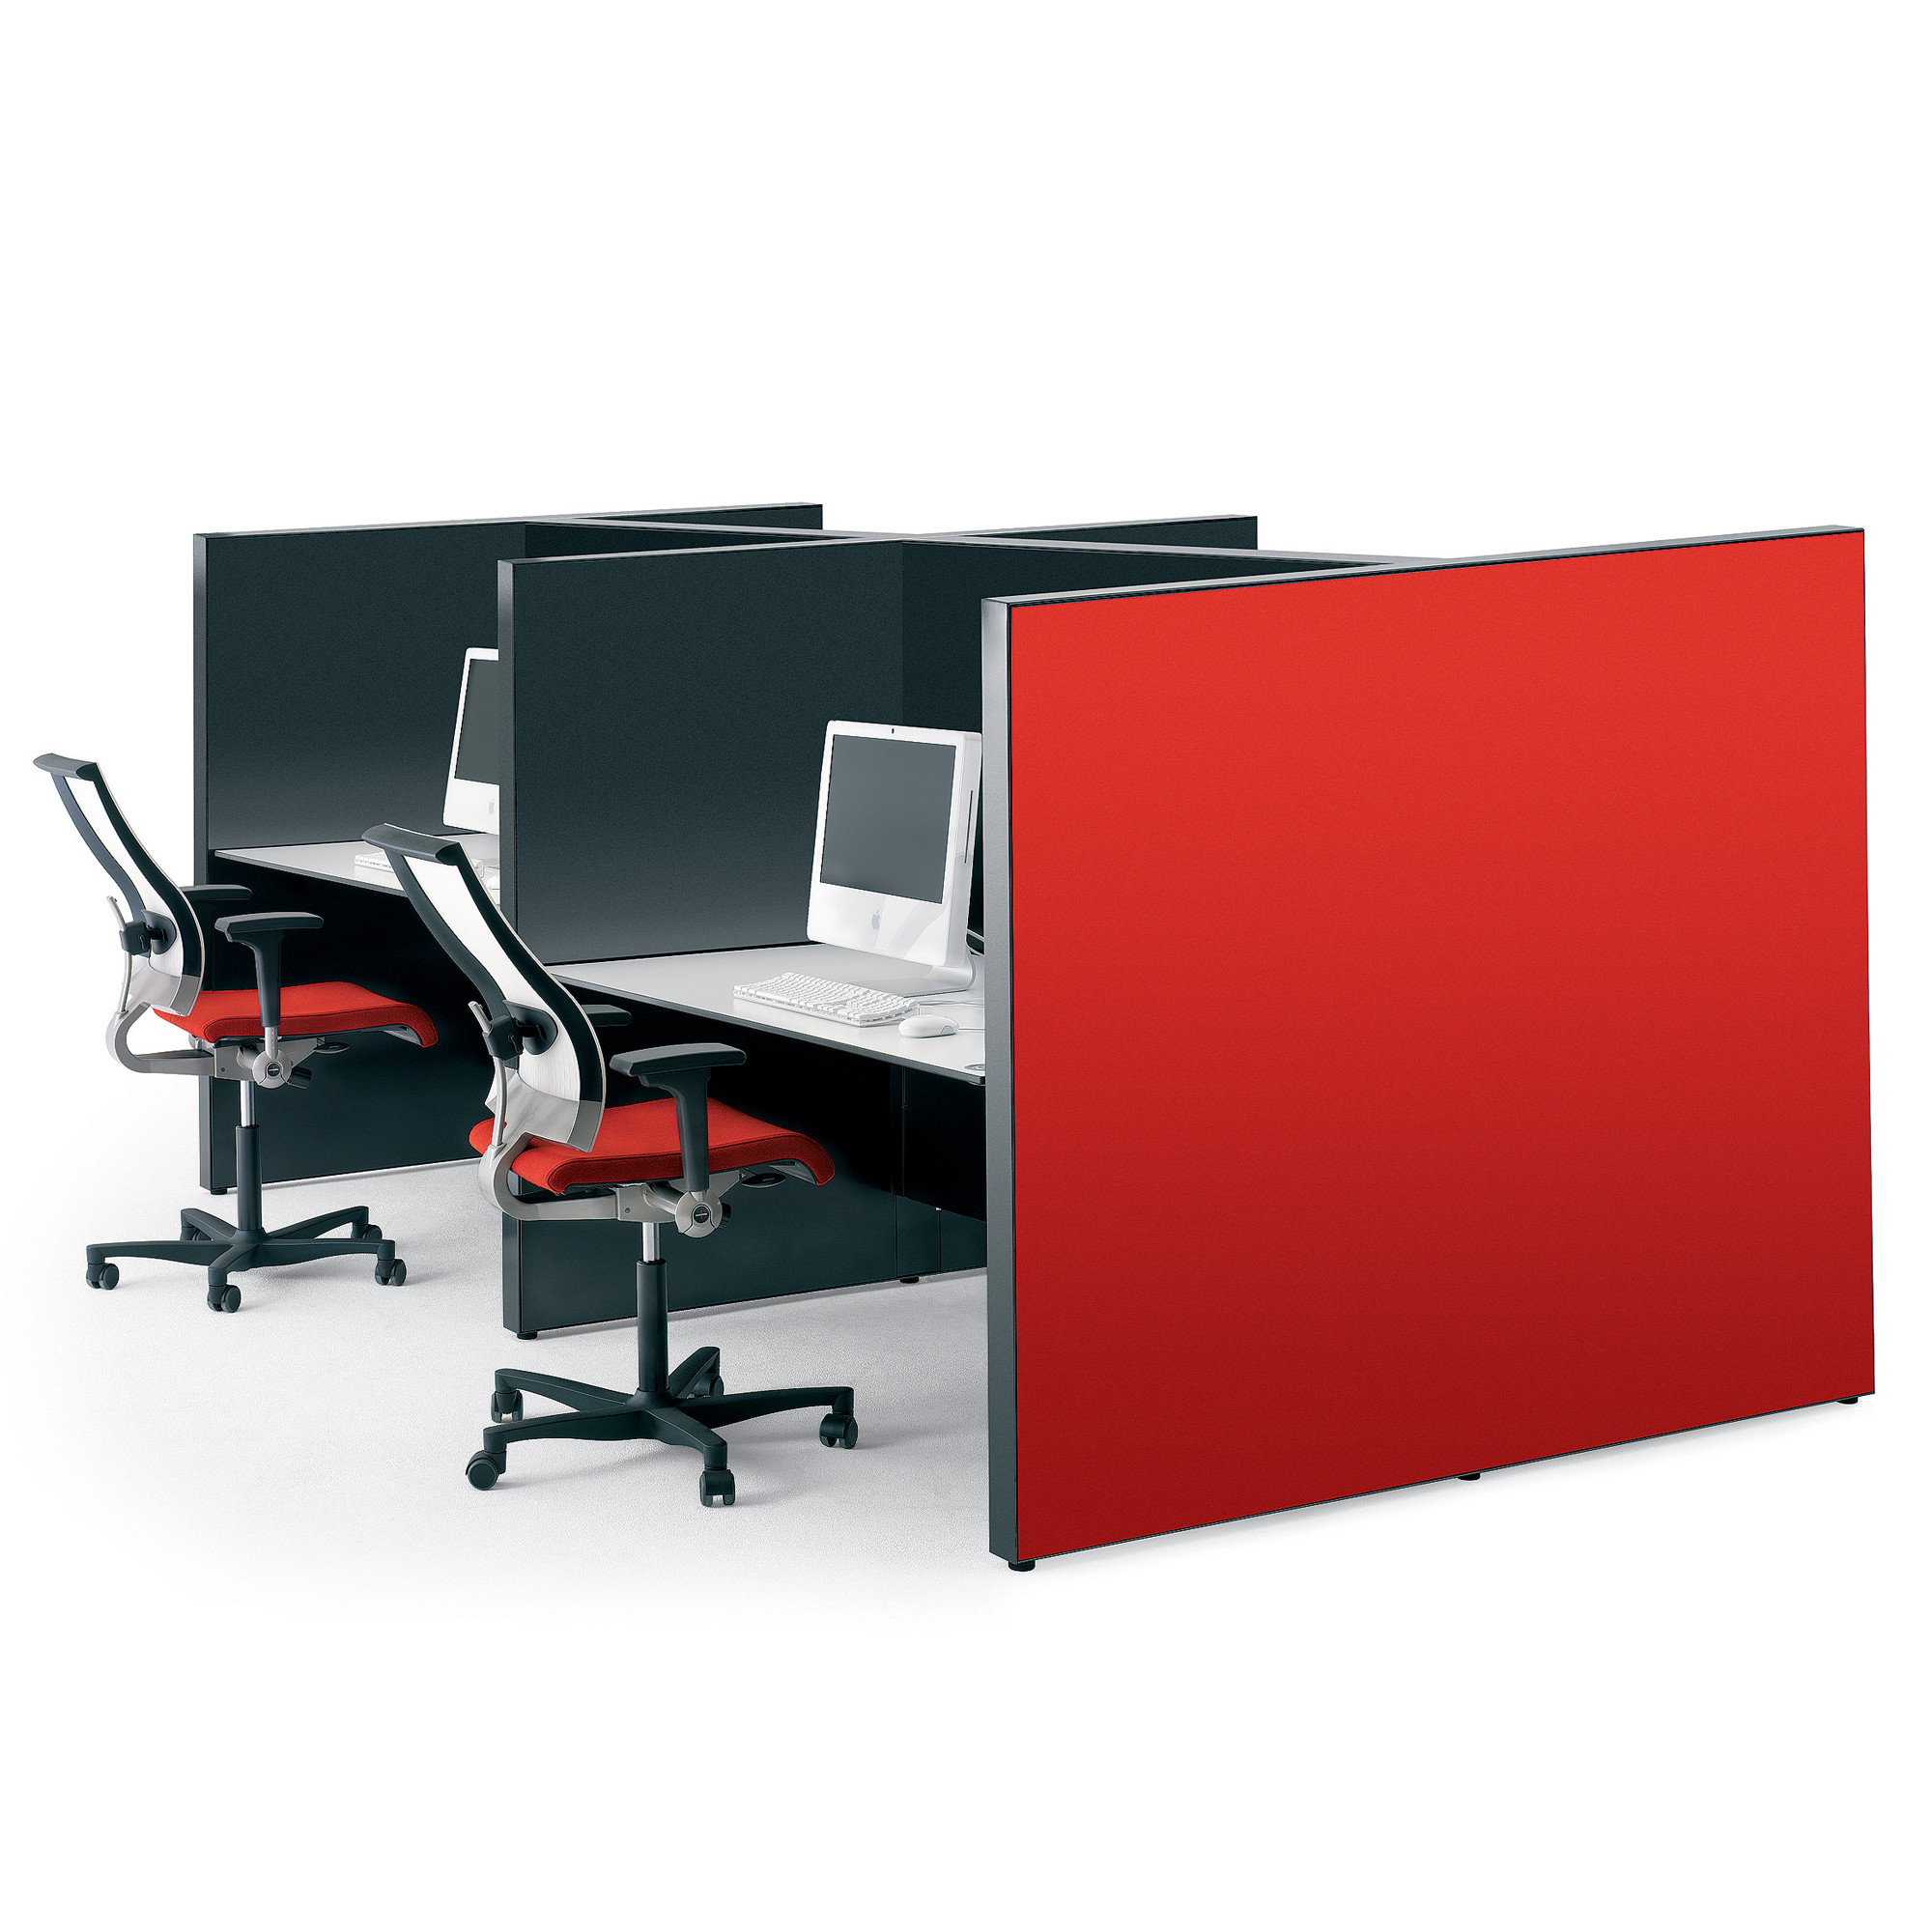 Ahrend 750 Desk Bench System